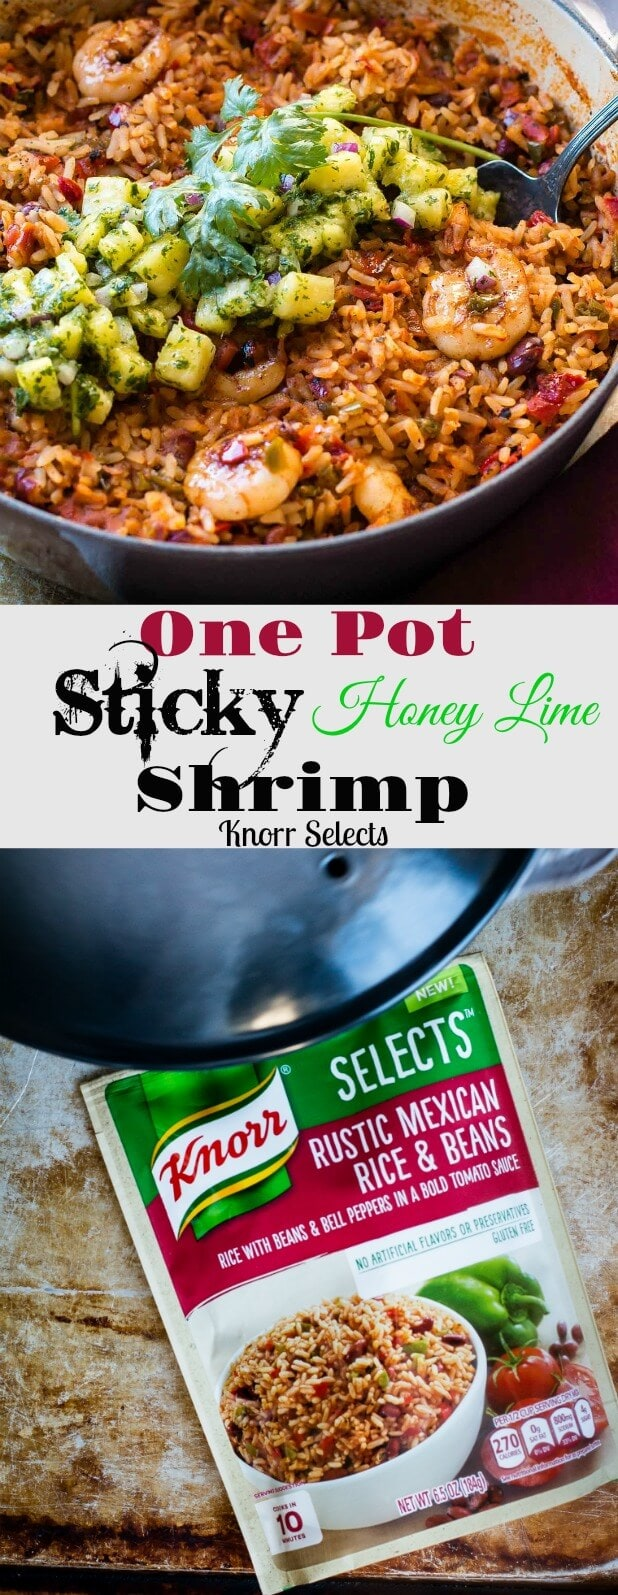 Love our sticky honey lime grilled chicken? This one pot sticky honey lime shrimp with pineapple chimichurri took meonly 20 minutes and might be even better! One pot full of spicy Mexican rice, peppers, beans and shrimp all topped off with the yummiest honey lime sauce and pineapple chimichurri ohsweetbasil.com